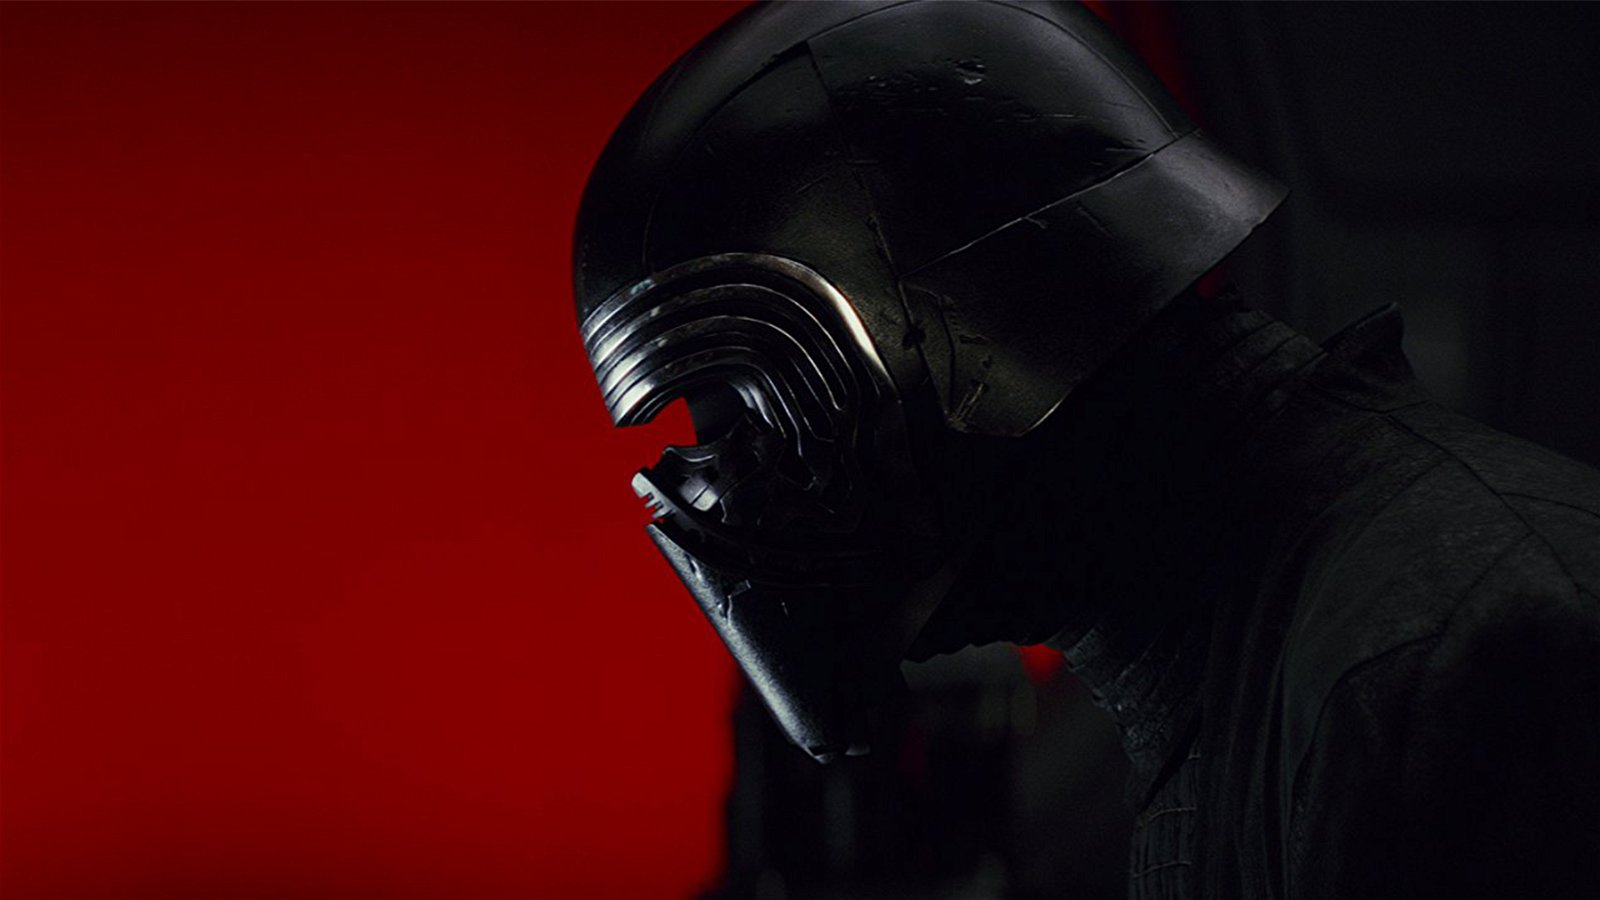 There's No Long-Term Vision For Star Wars